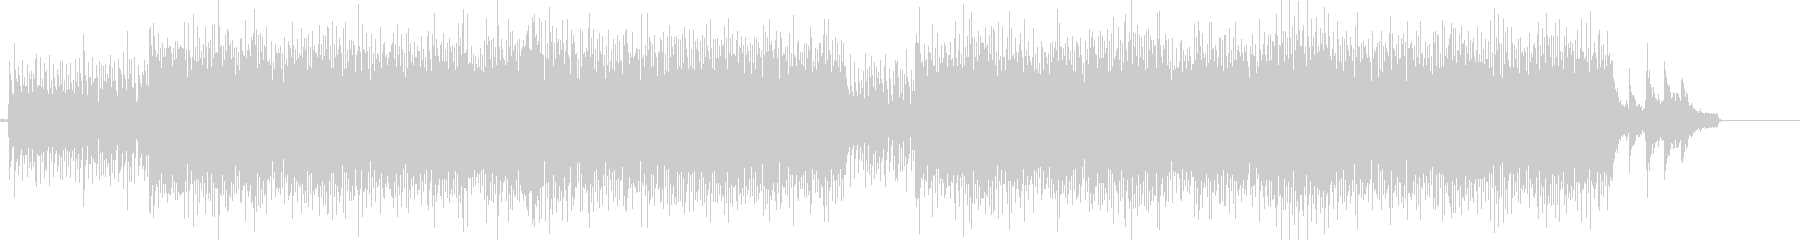 Fantastic and forest-like music's unreproduced waveform